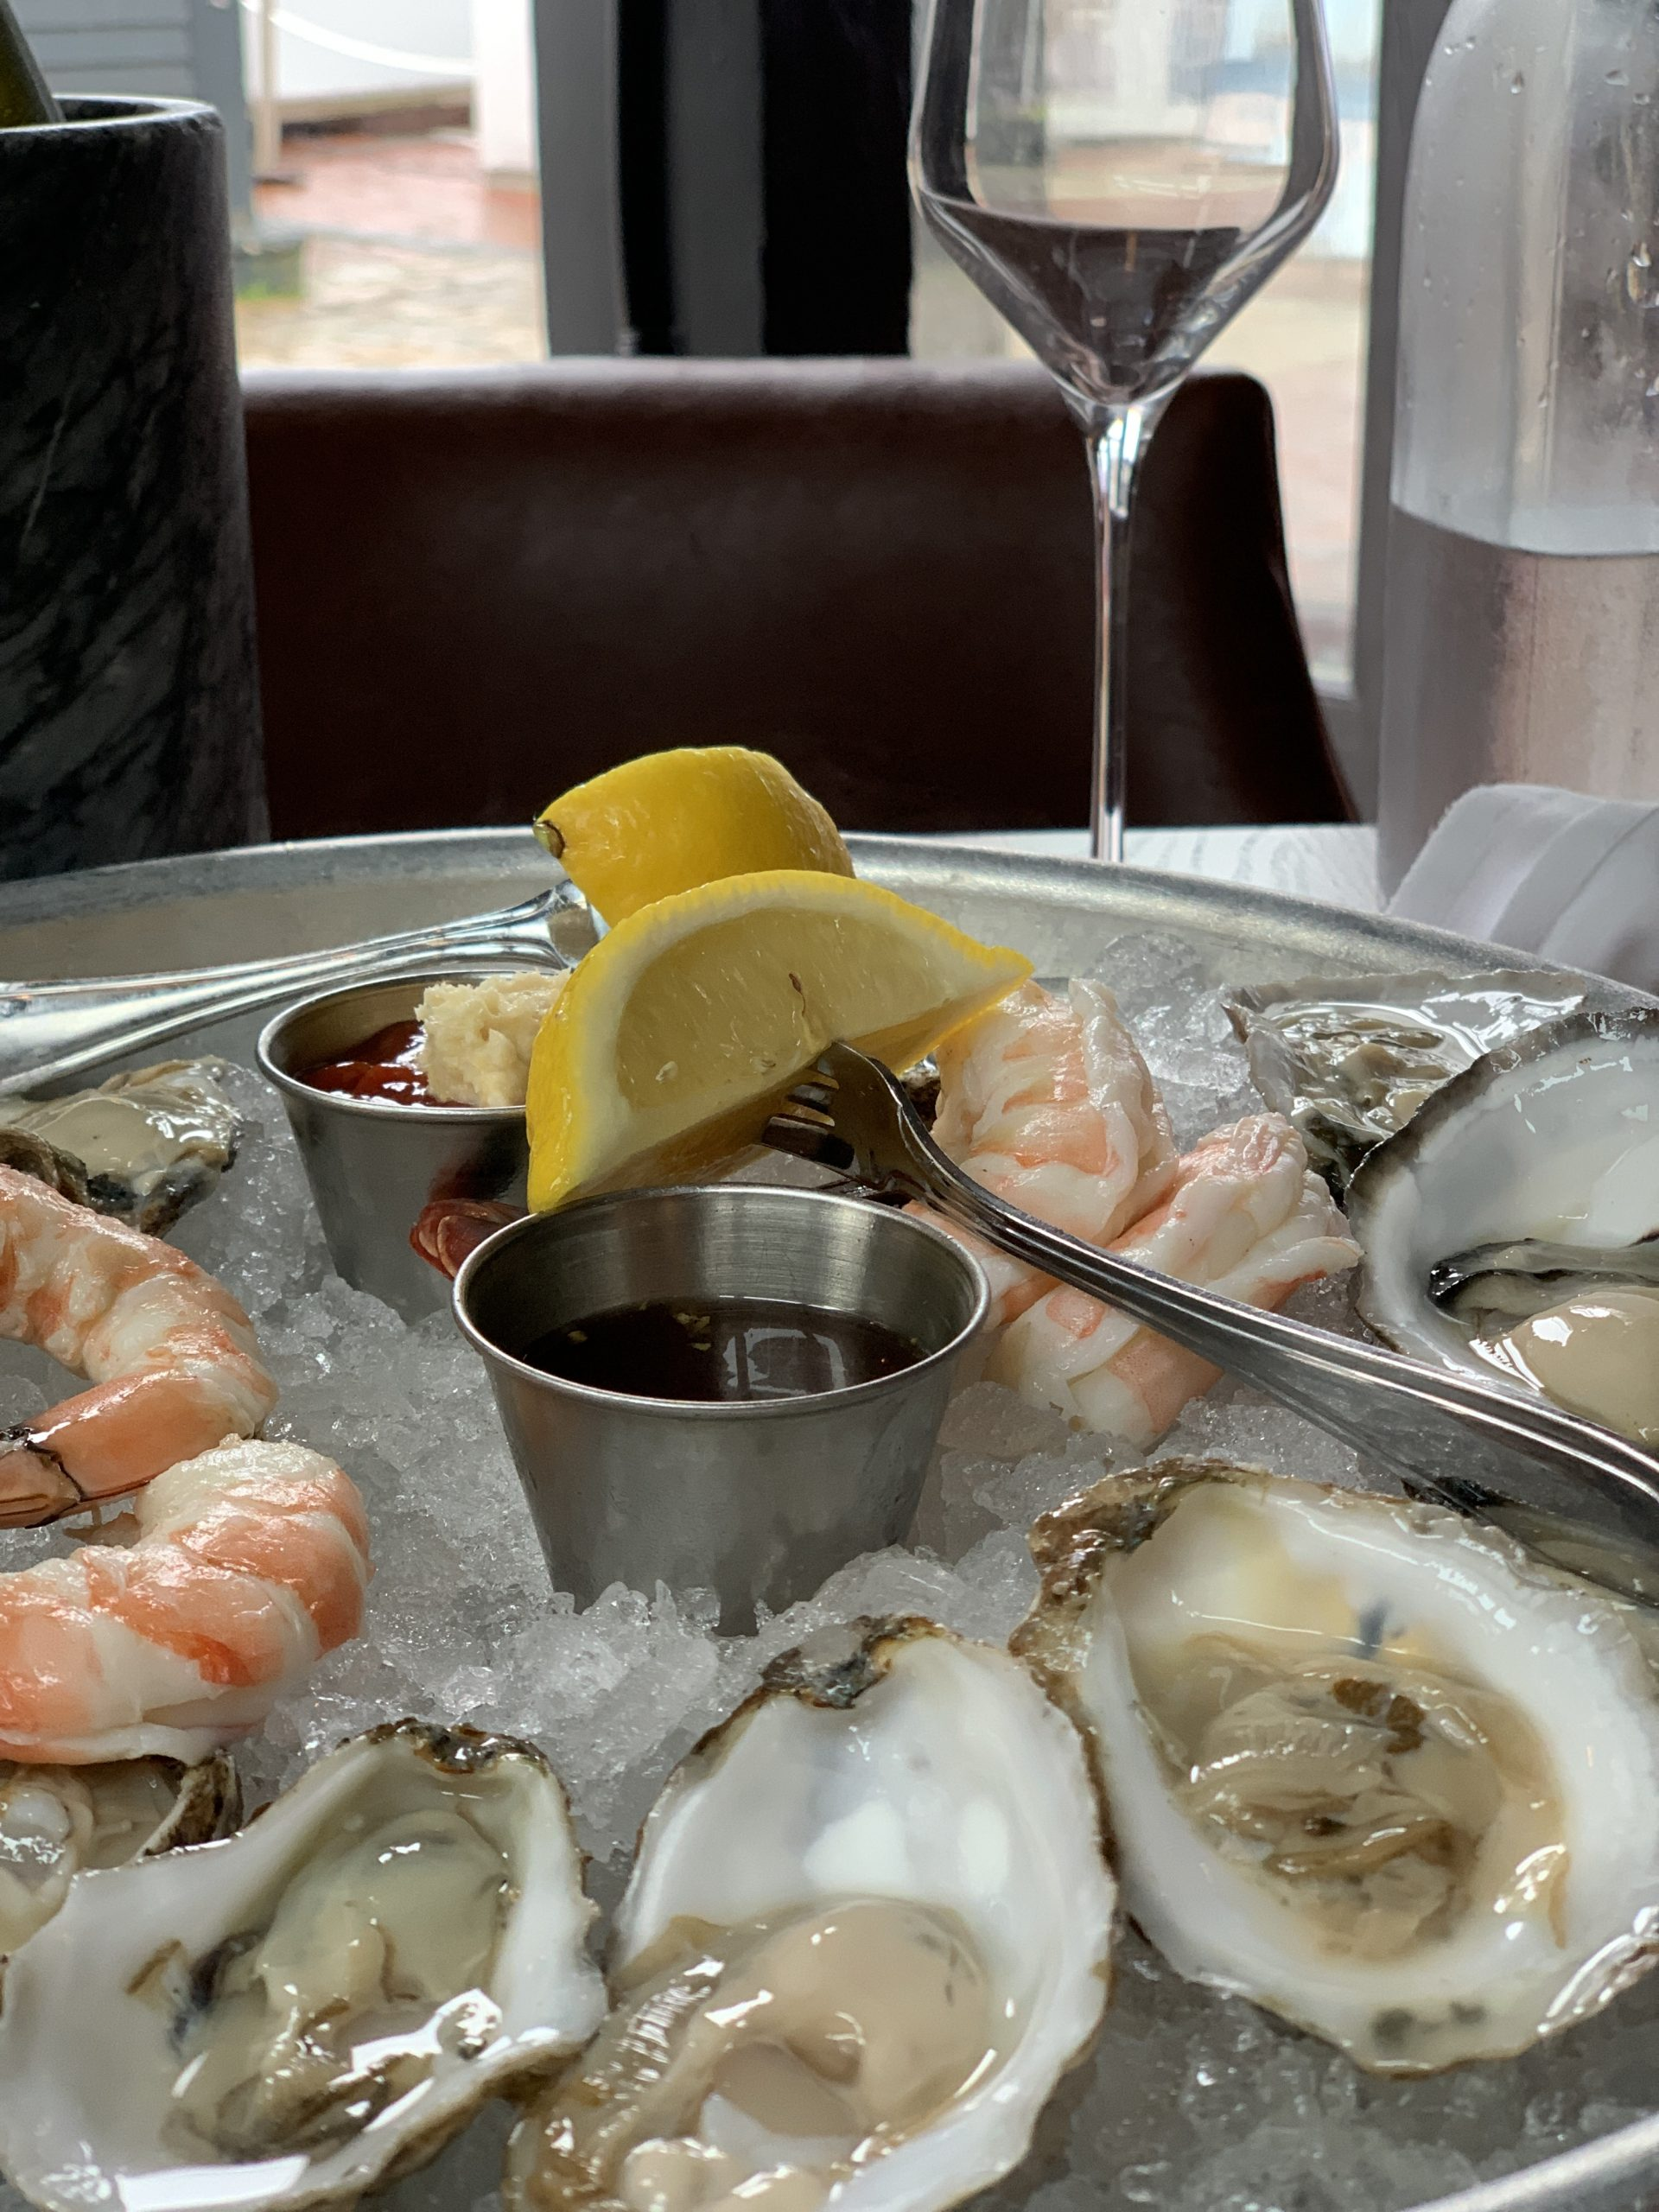 Shrimp and raw oysters on ice at 22 Bowen's Wine Bar & Grille in Newport, RI